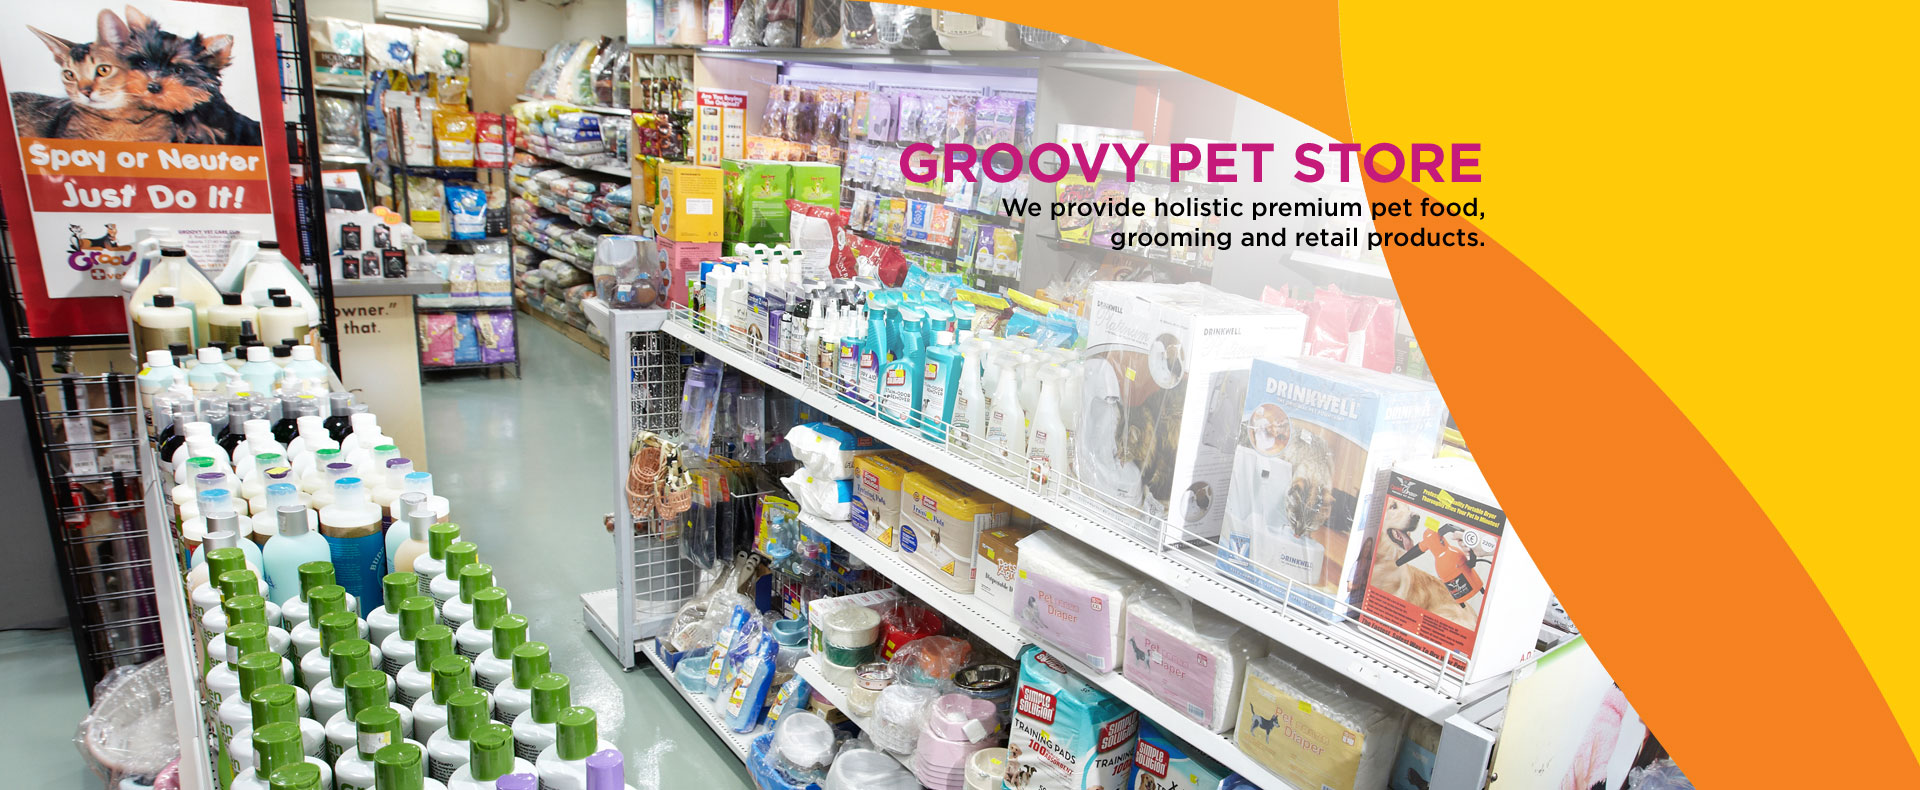 groovy pet store